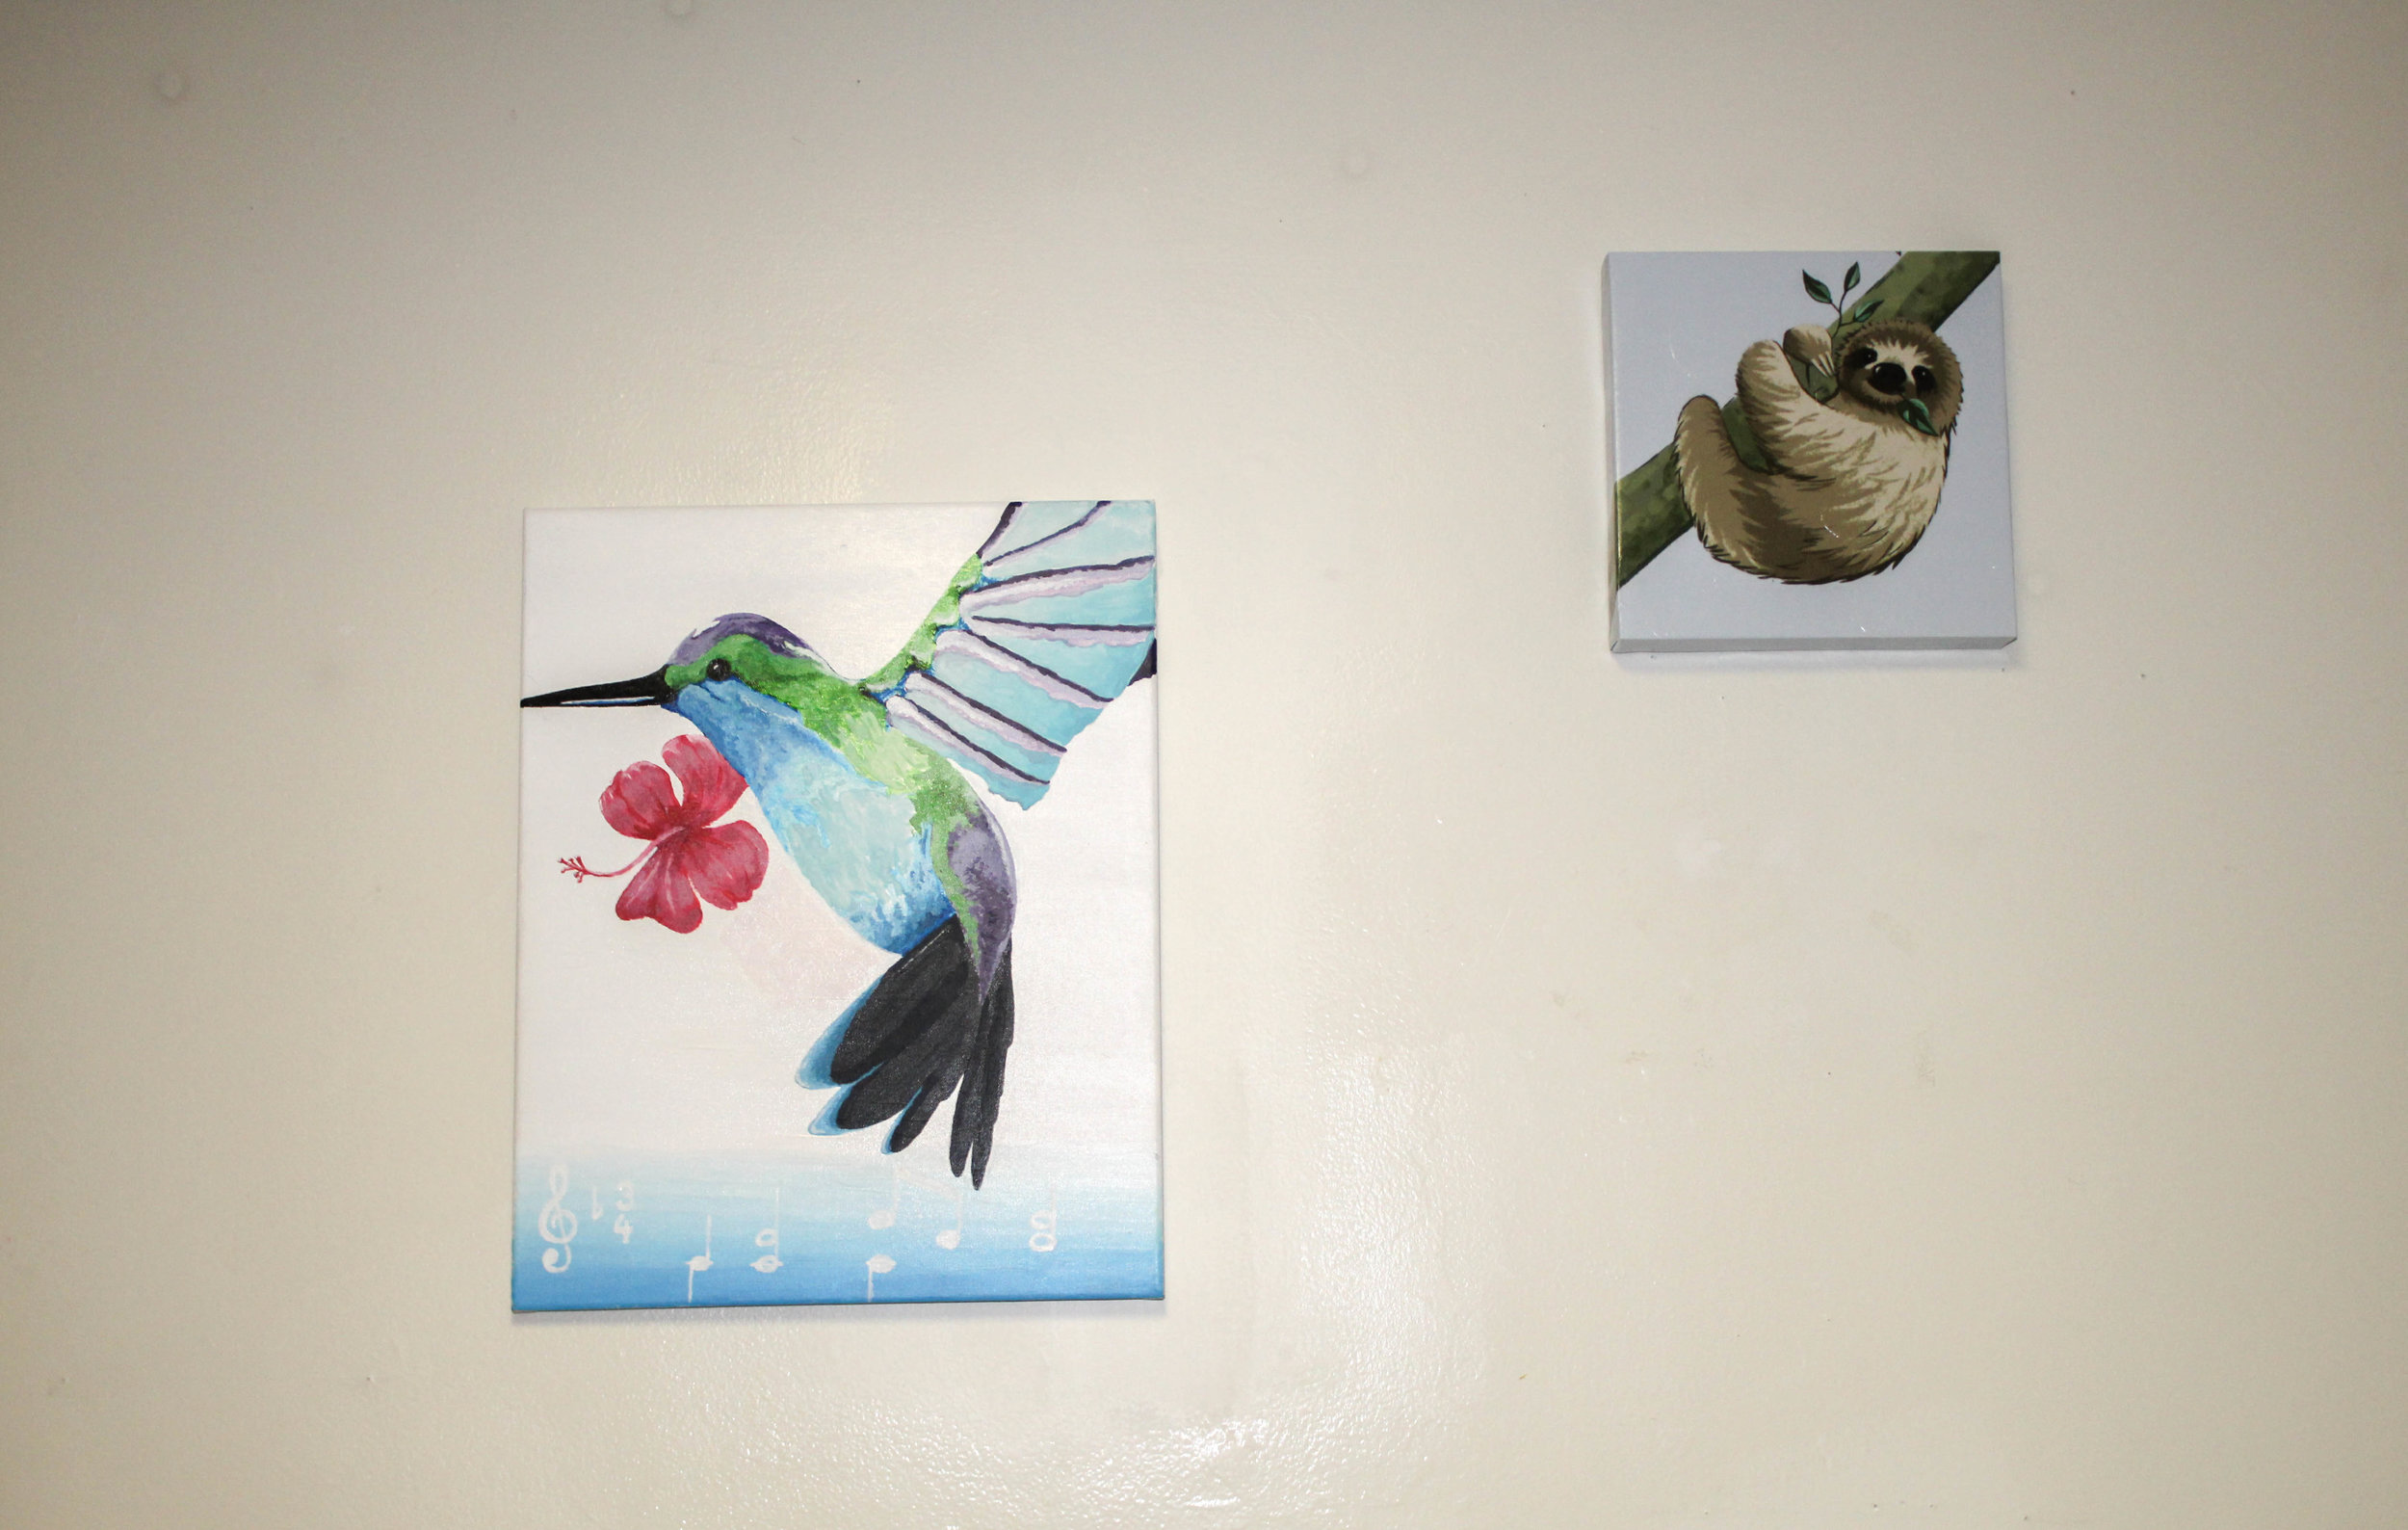 Gibson also displays pictures of different animals in her room. The painting of the sloth was painted by her friend.